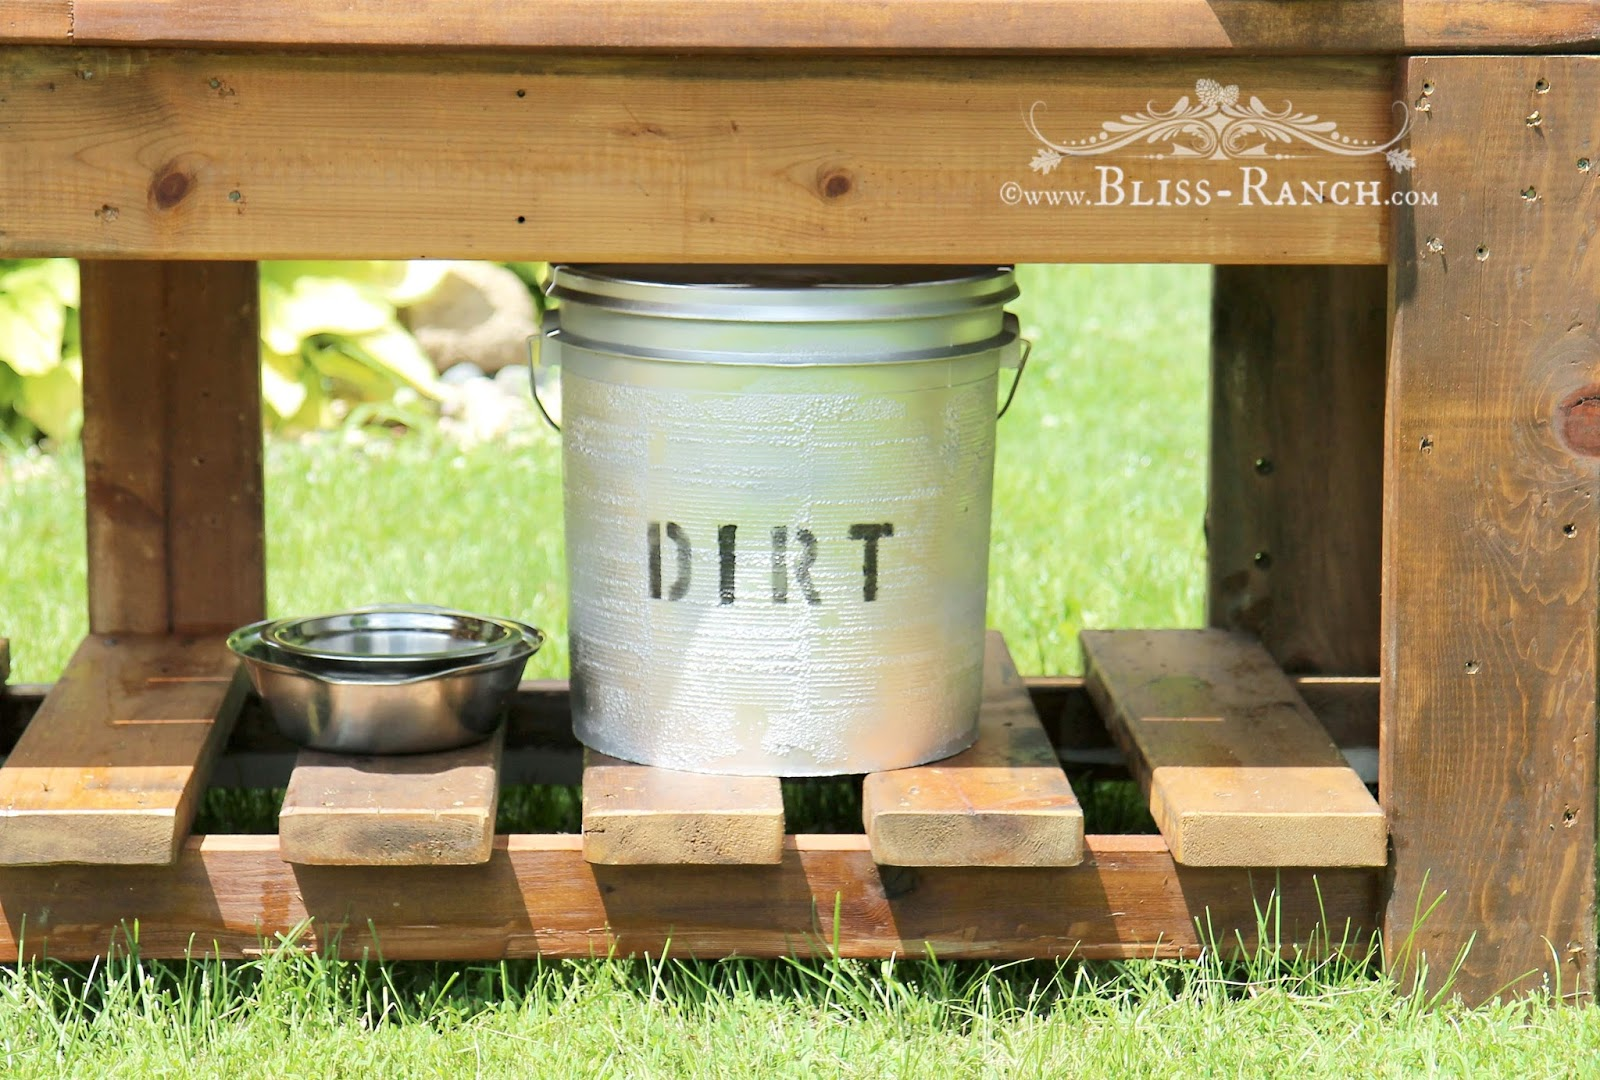 Mud Pie Station Bliss-Ranch.com